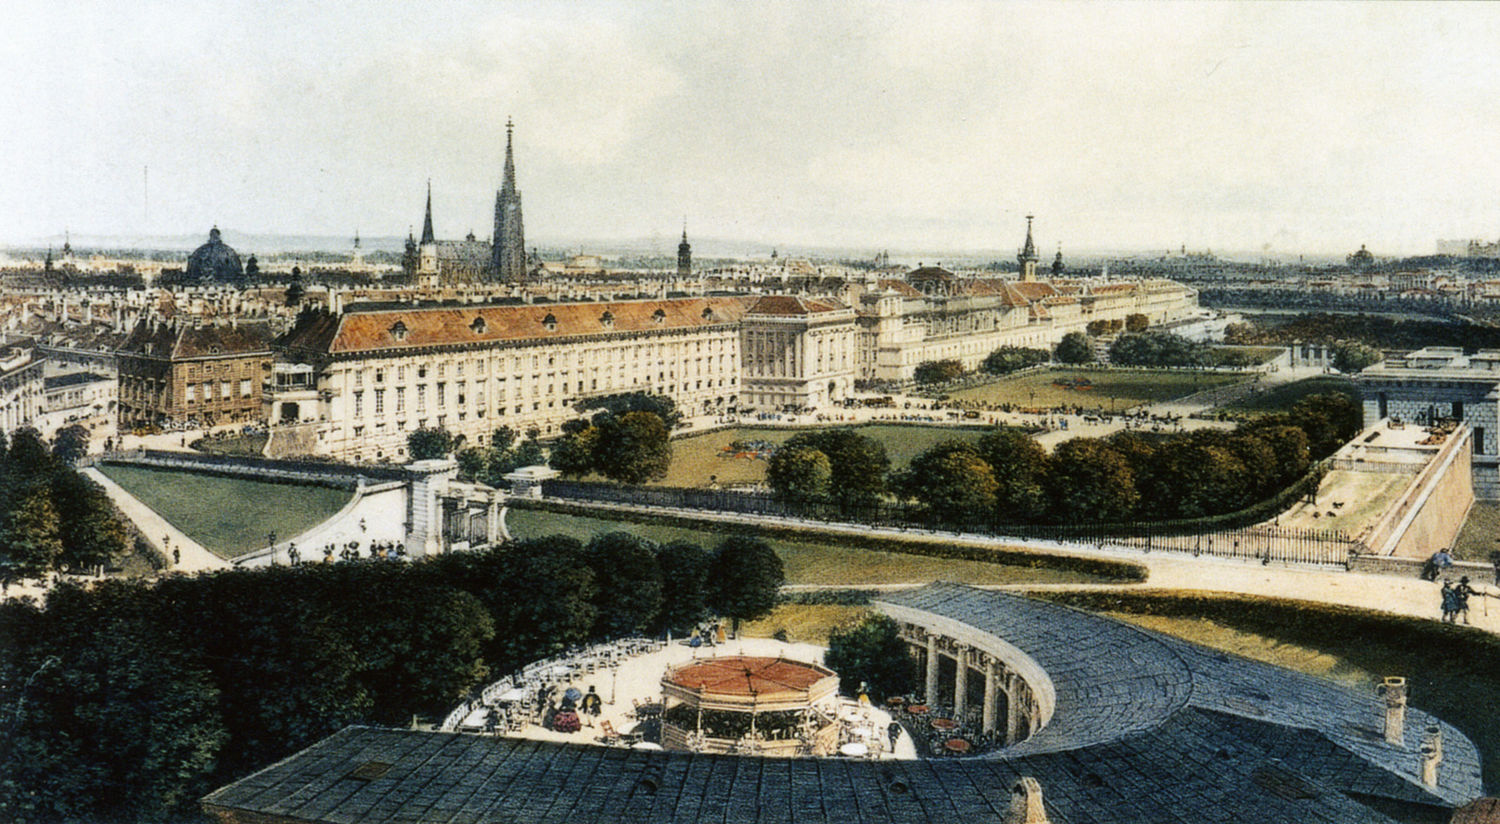 The Vienna Imperial Palace